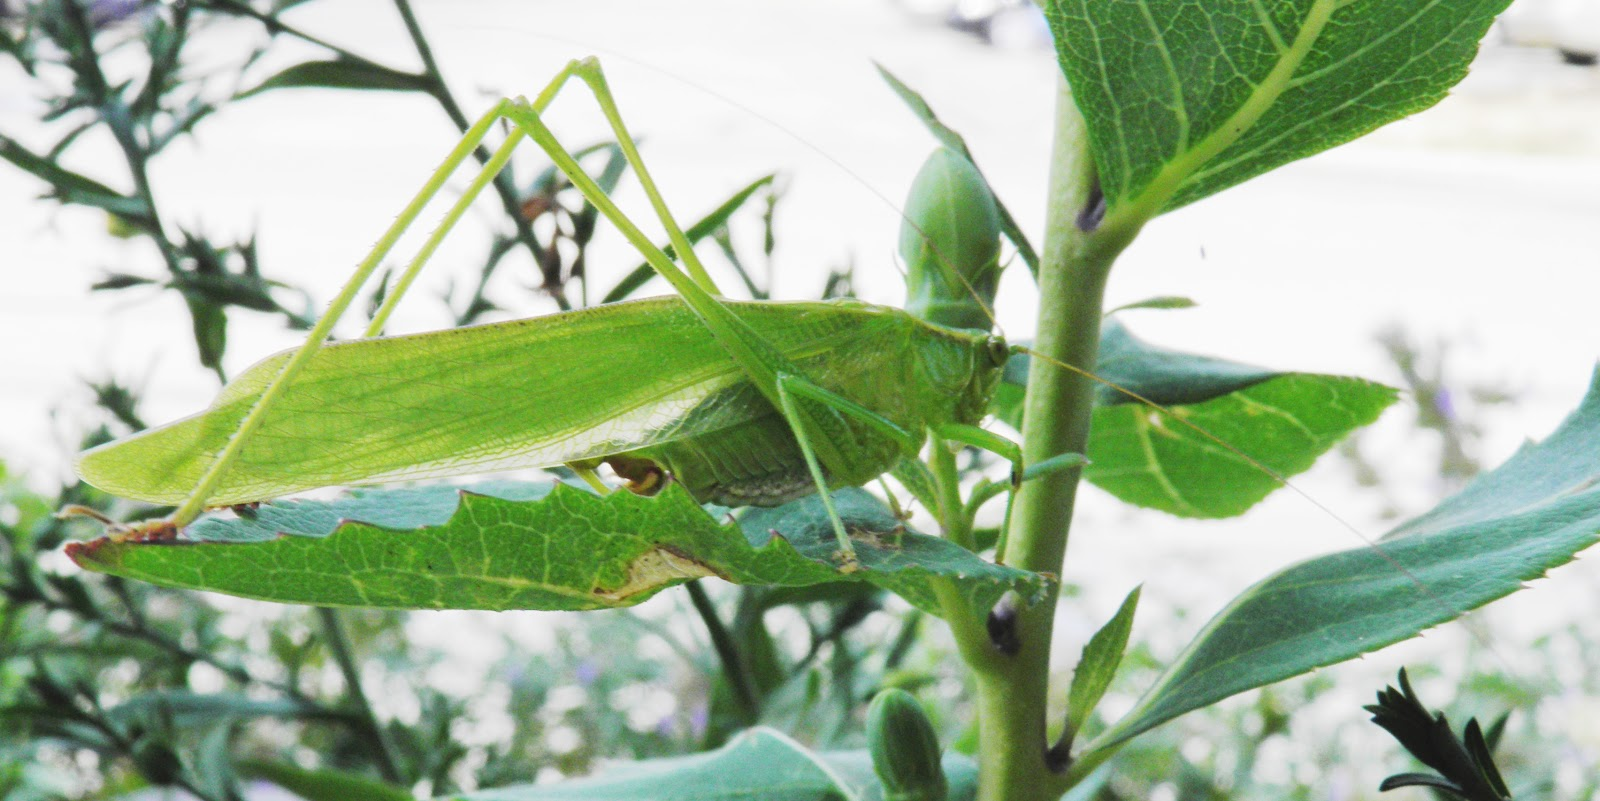 Green Leaf Shaped Grasshopper Like Bug And A White Bell Shaped Flower